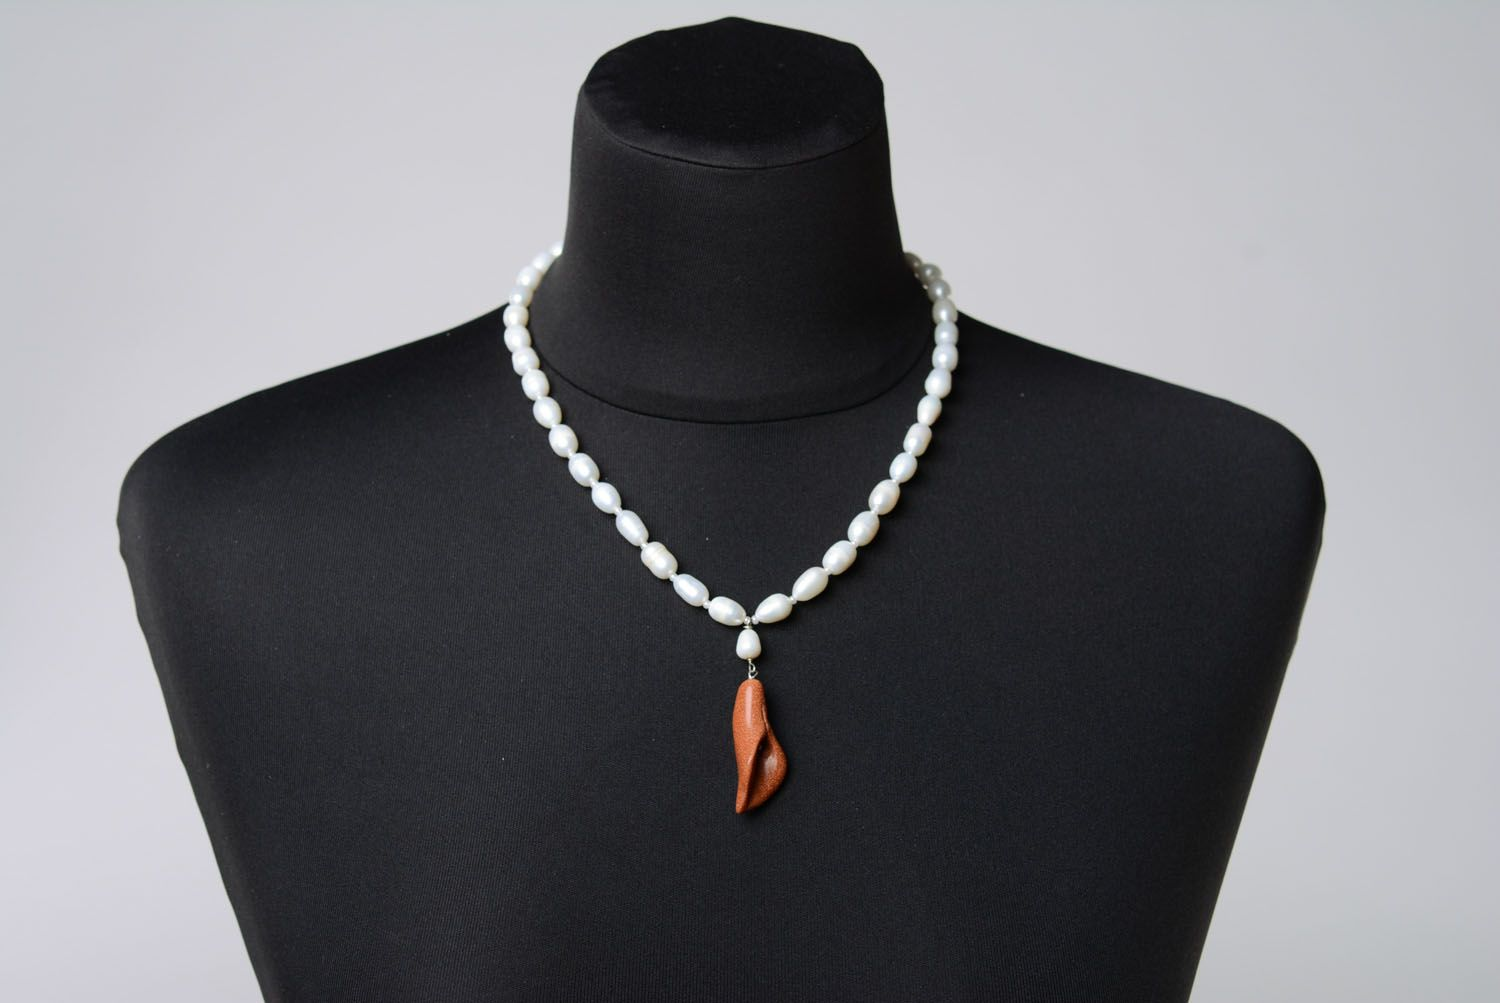 Necklace with pearls and aventurine photo 2